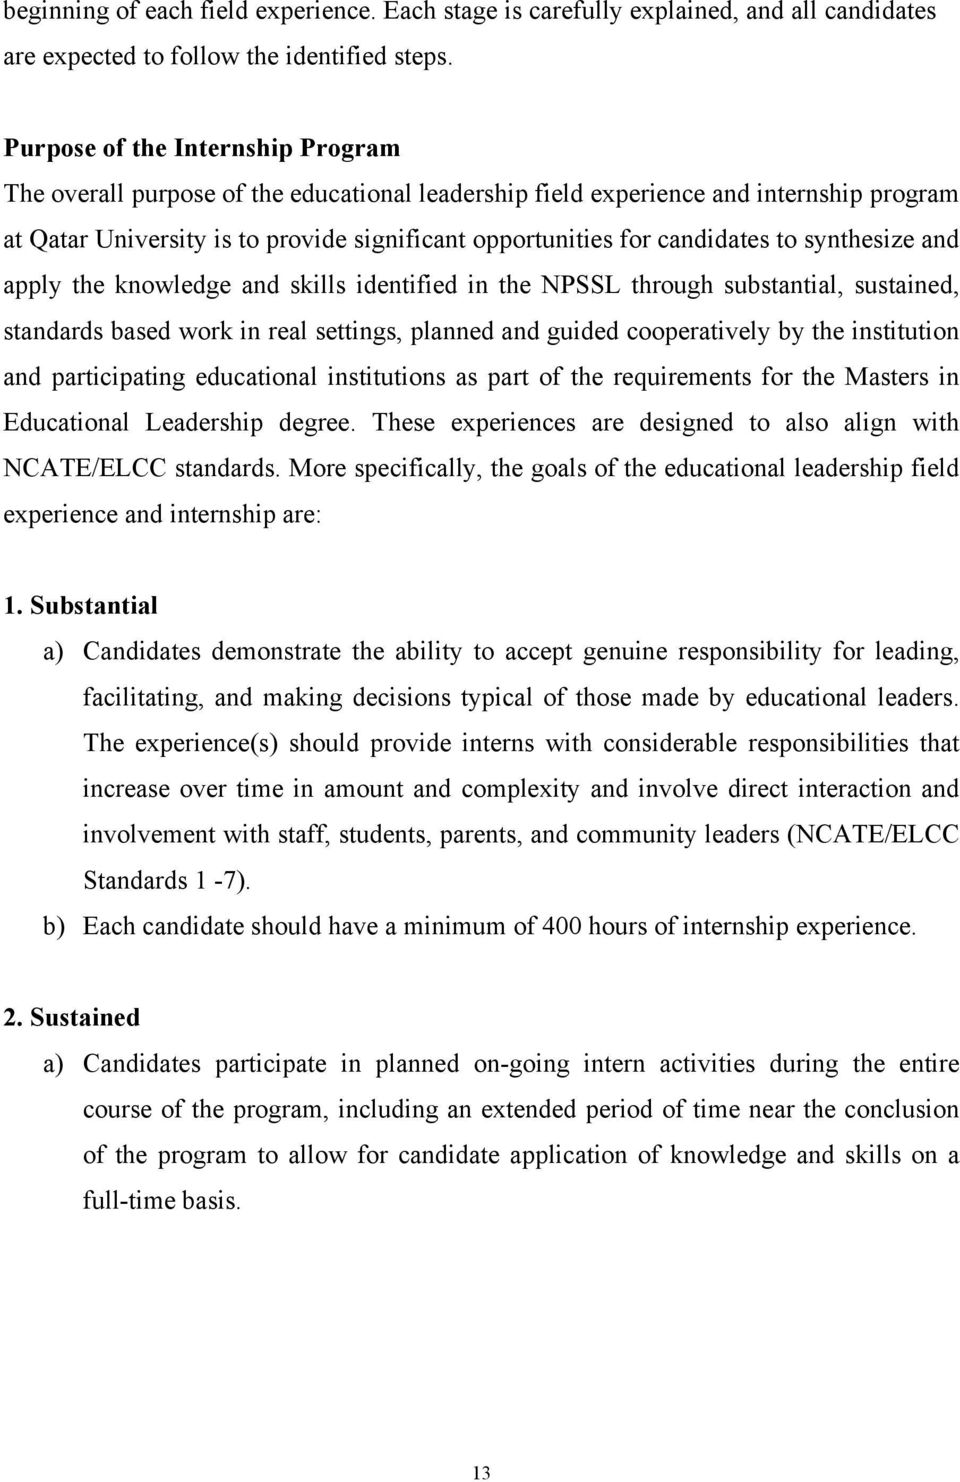 to synthesize and apply the knowledge and skills identified in the NPSSL through substantial, sustained, standards based work in real settings, planned and guided cooperatively by the institution and